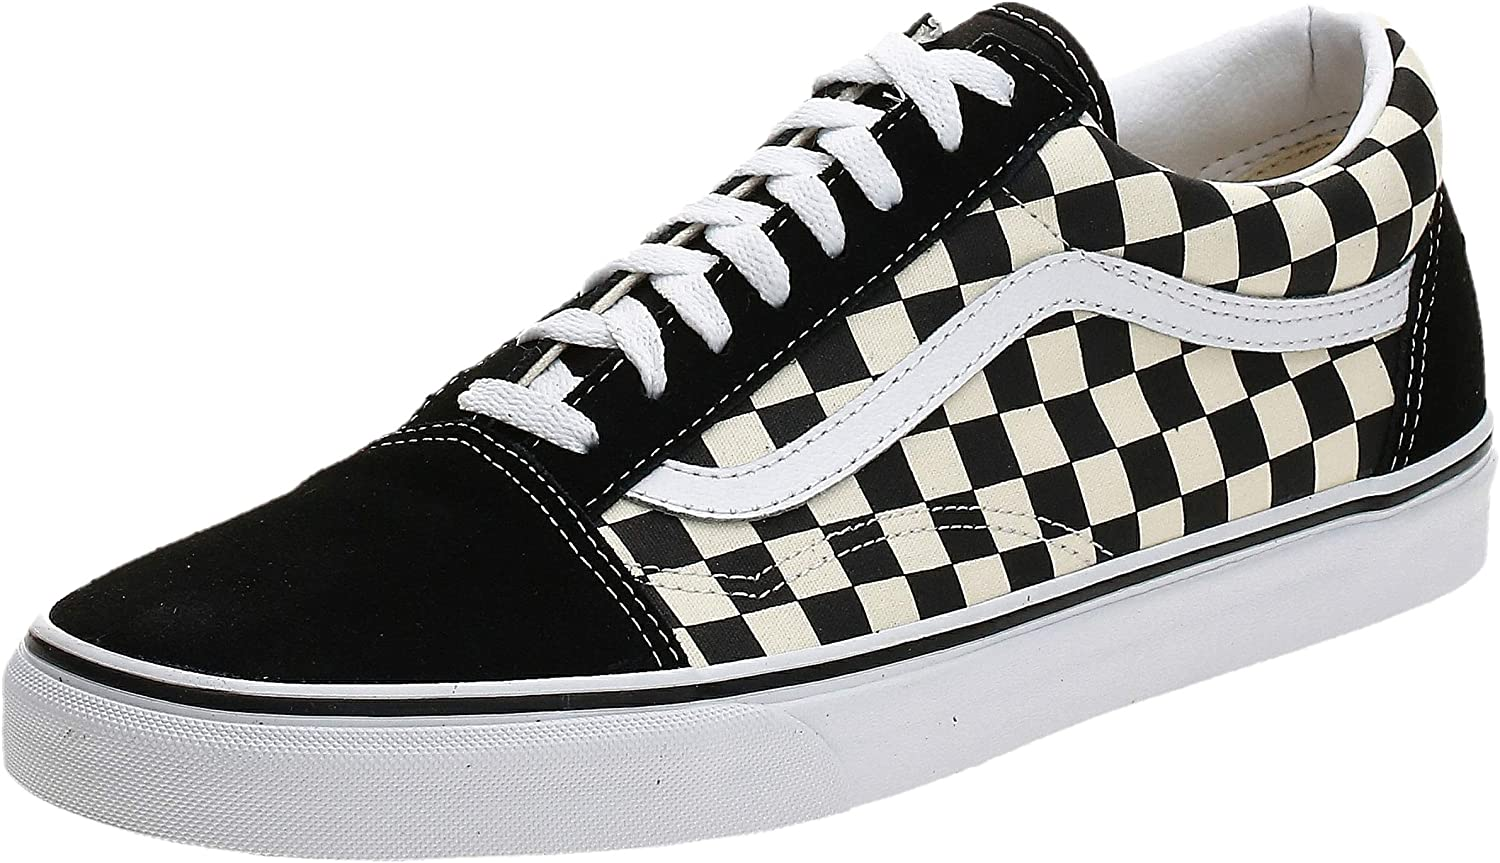 Vans Unisex Old Skool Primary Check Skate Shoe Fashion Sneakers